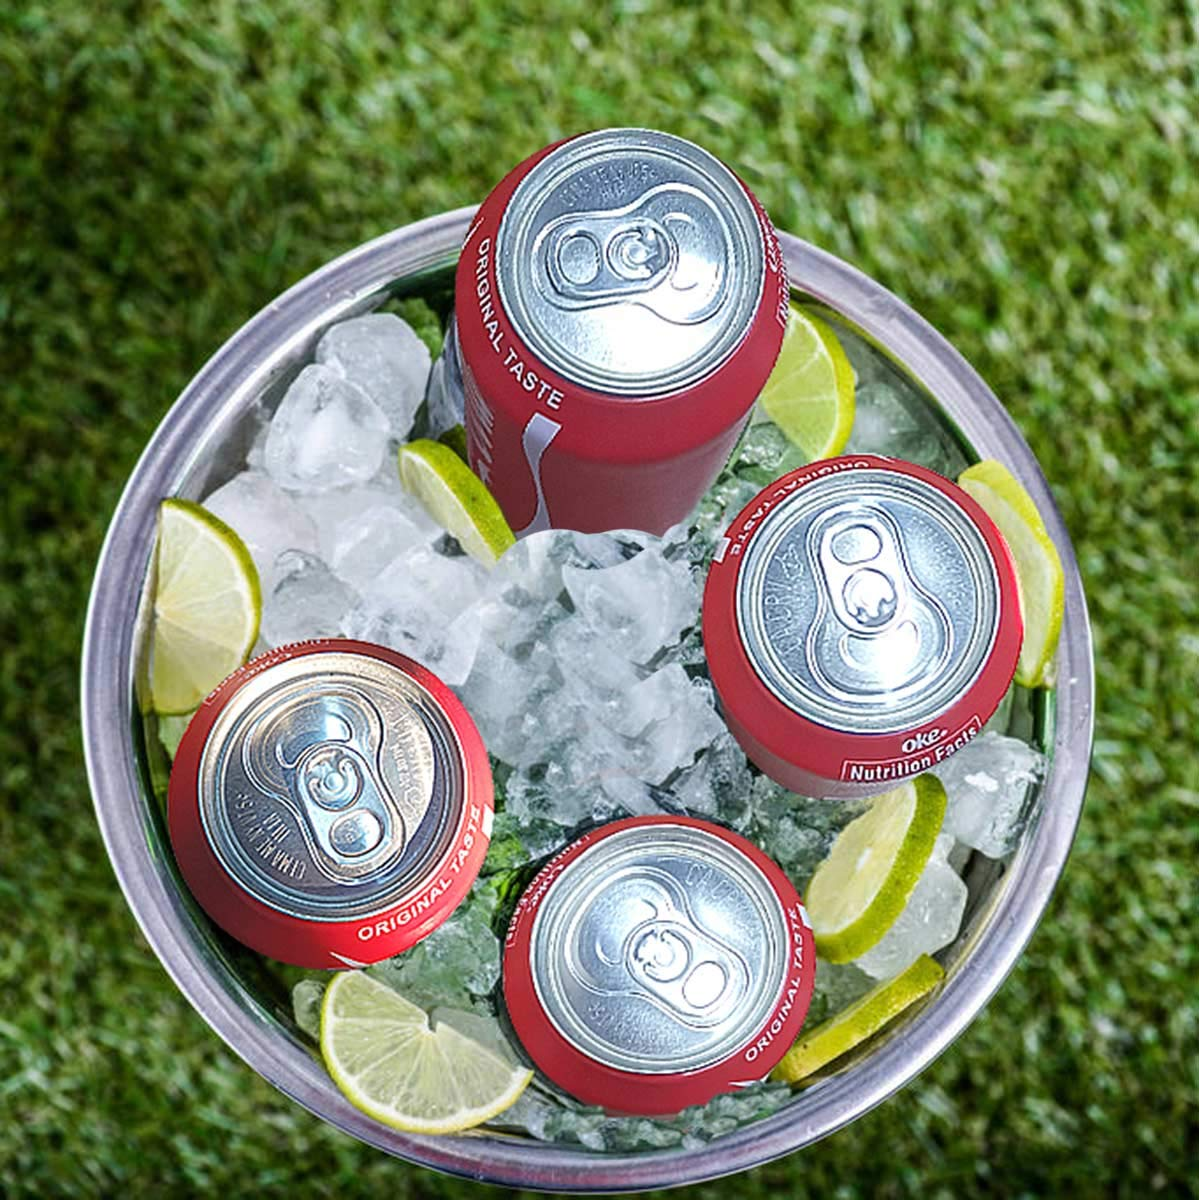 330/355/375Ml Soda Can Sleeve Silicone Beer Can Cover Drink Can Suit For Outdoor Events Soccer Games Beer Can Sleeve Hide A Beer